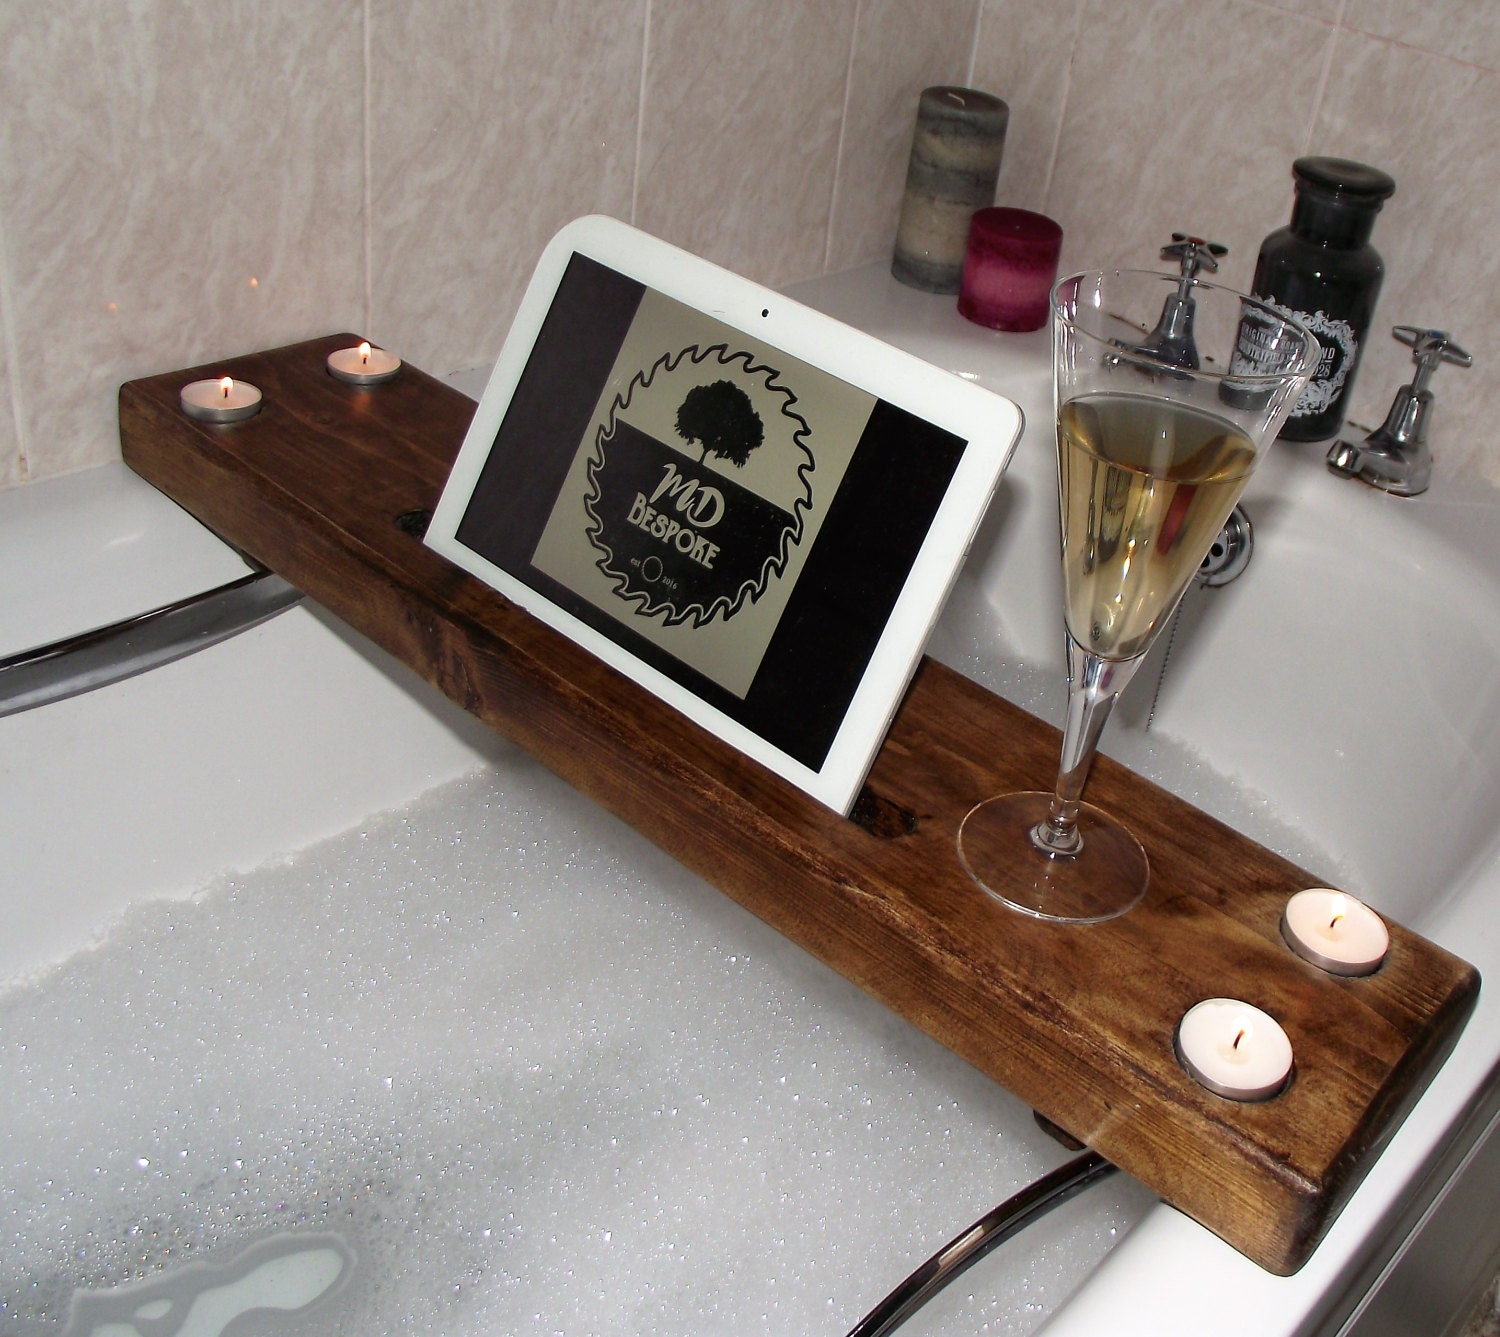 Wooden Bath Caddy Wooden Bath Tray Spa Pamper Bath